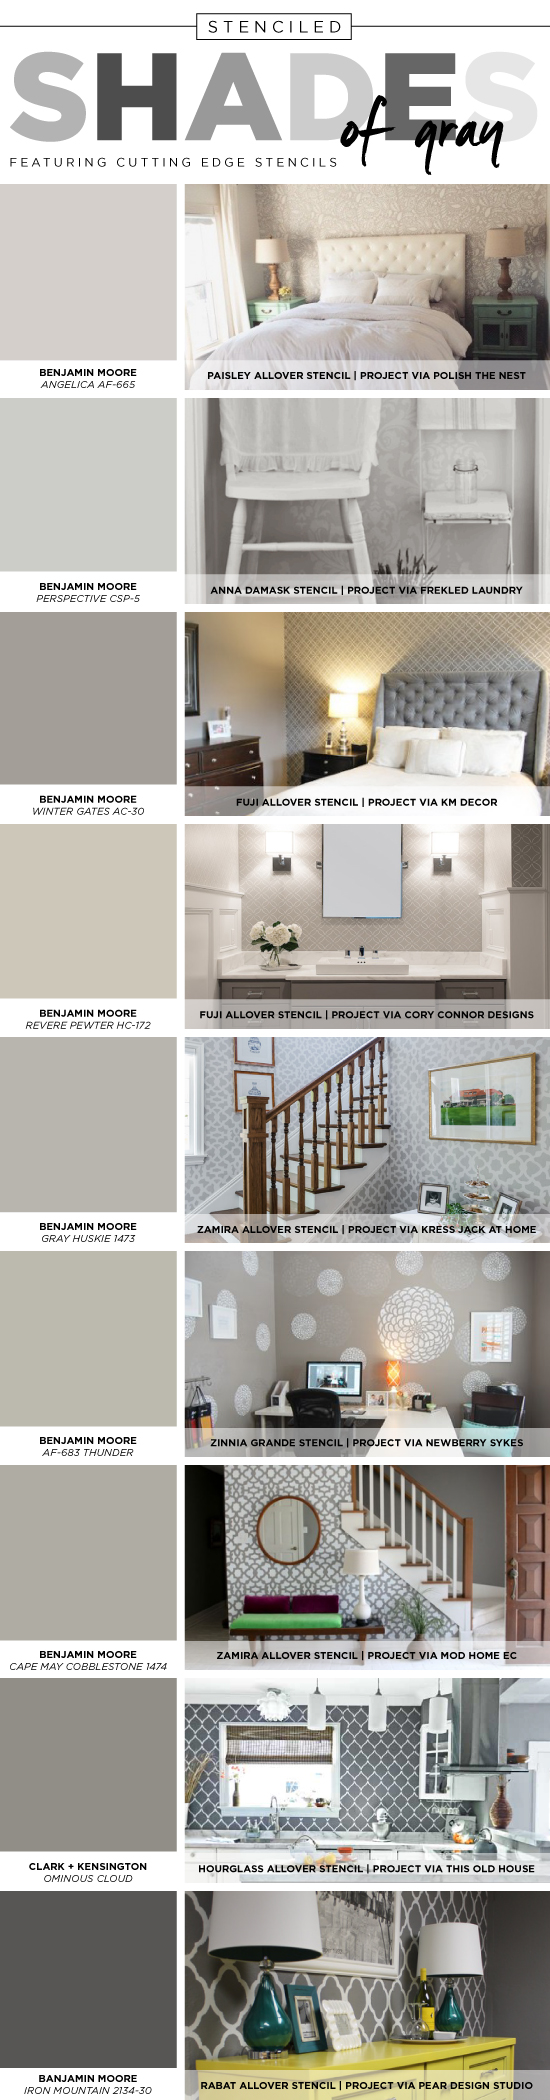 Shades Of Stenciled Gray Stencil Stories